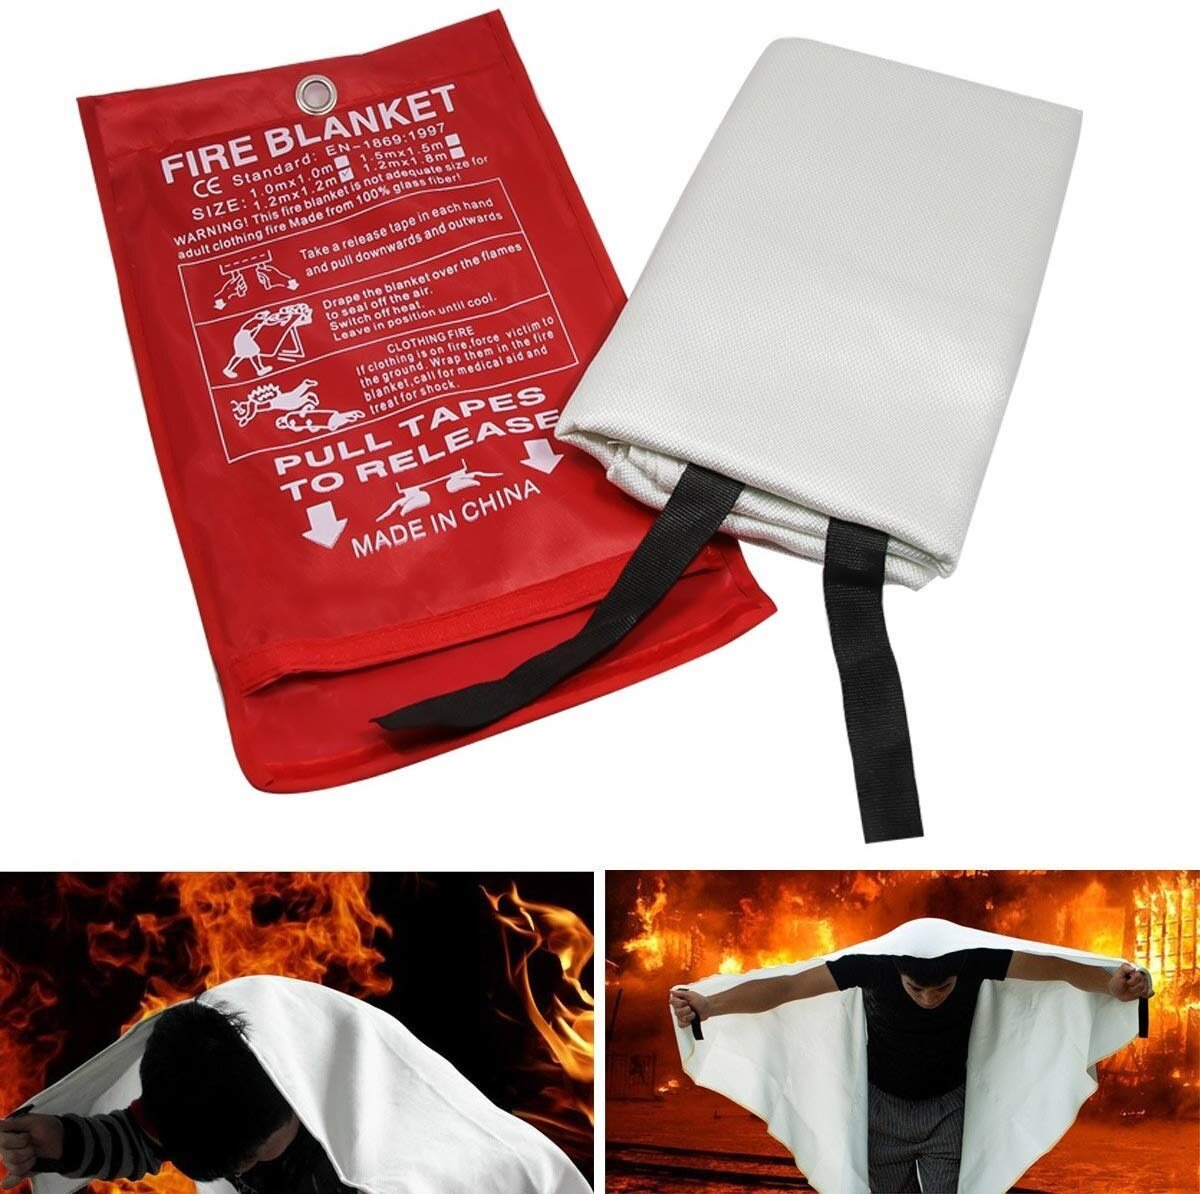 1x1m 1.2x1.2m 1.2x1.8m Fiberglass Fire Blanket Safety Blanket for Emergency Surival, Flame Retardant Protection and Heat Insulation